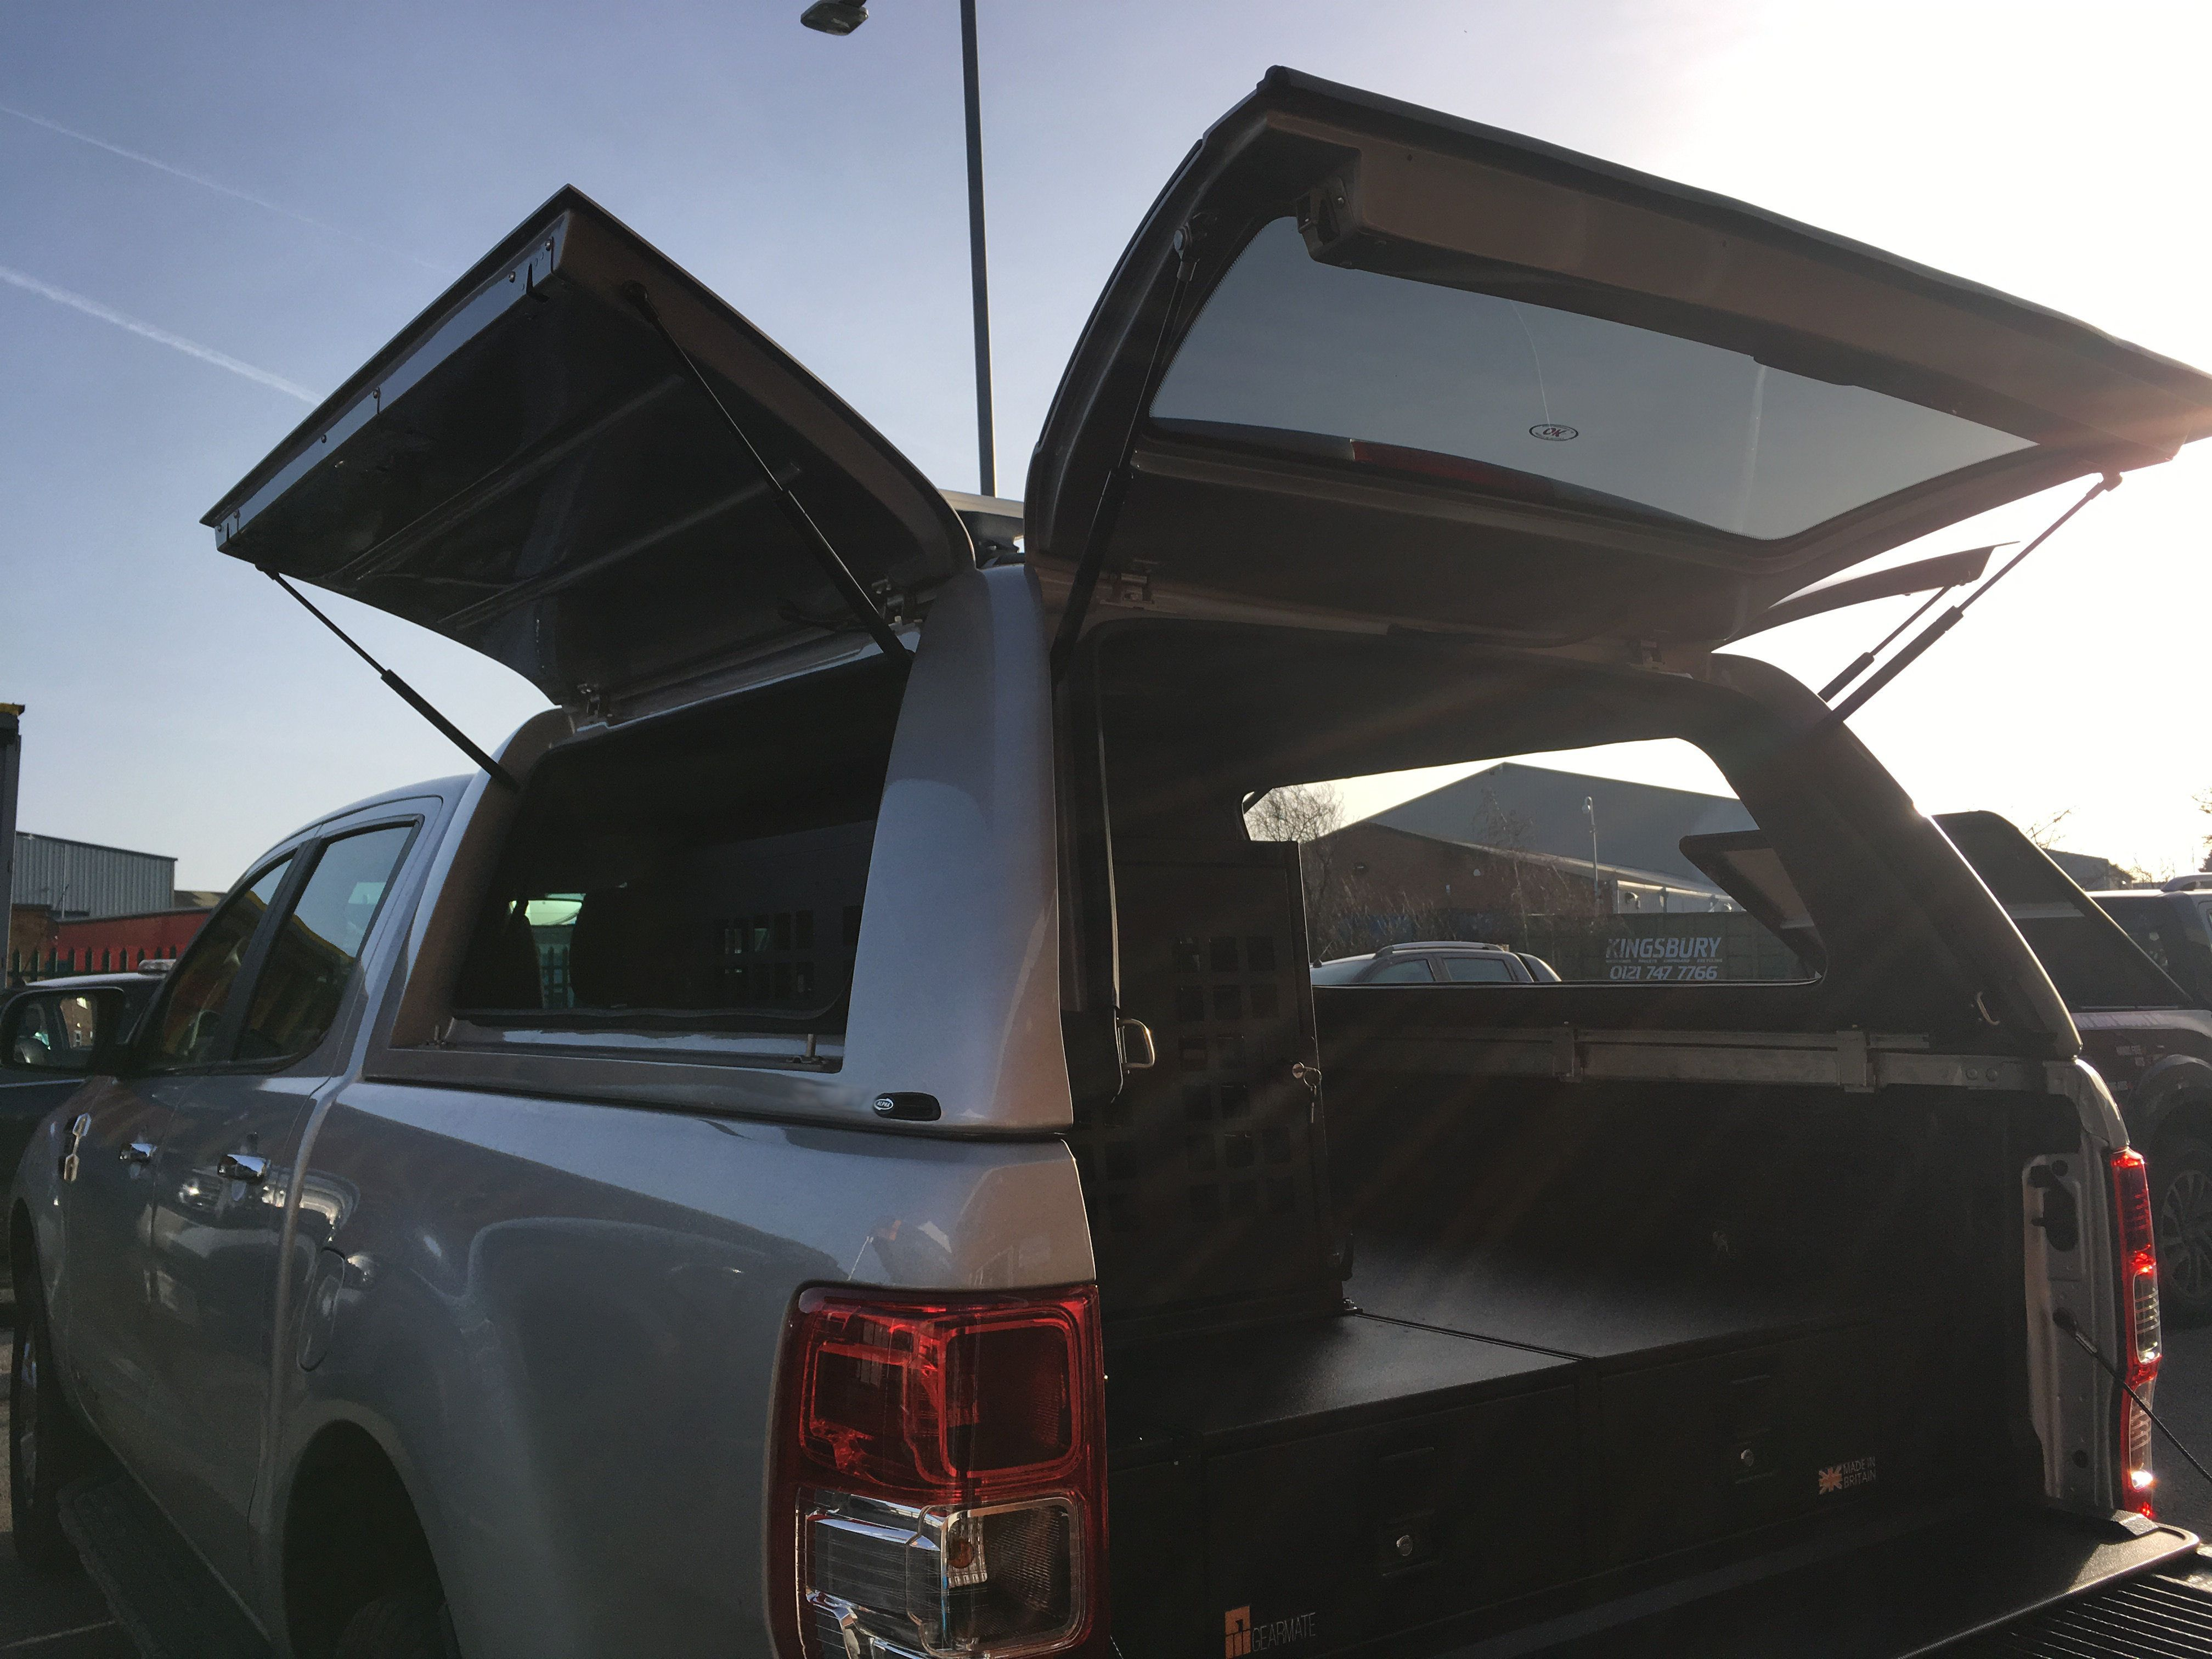 Ford UK Ranger fitted with Gearmate Gull Wing Hardtop